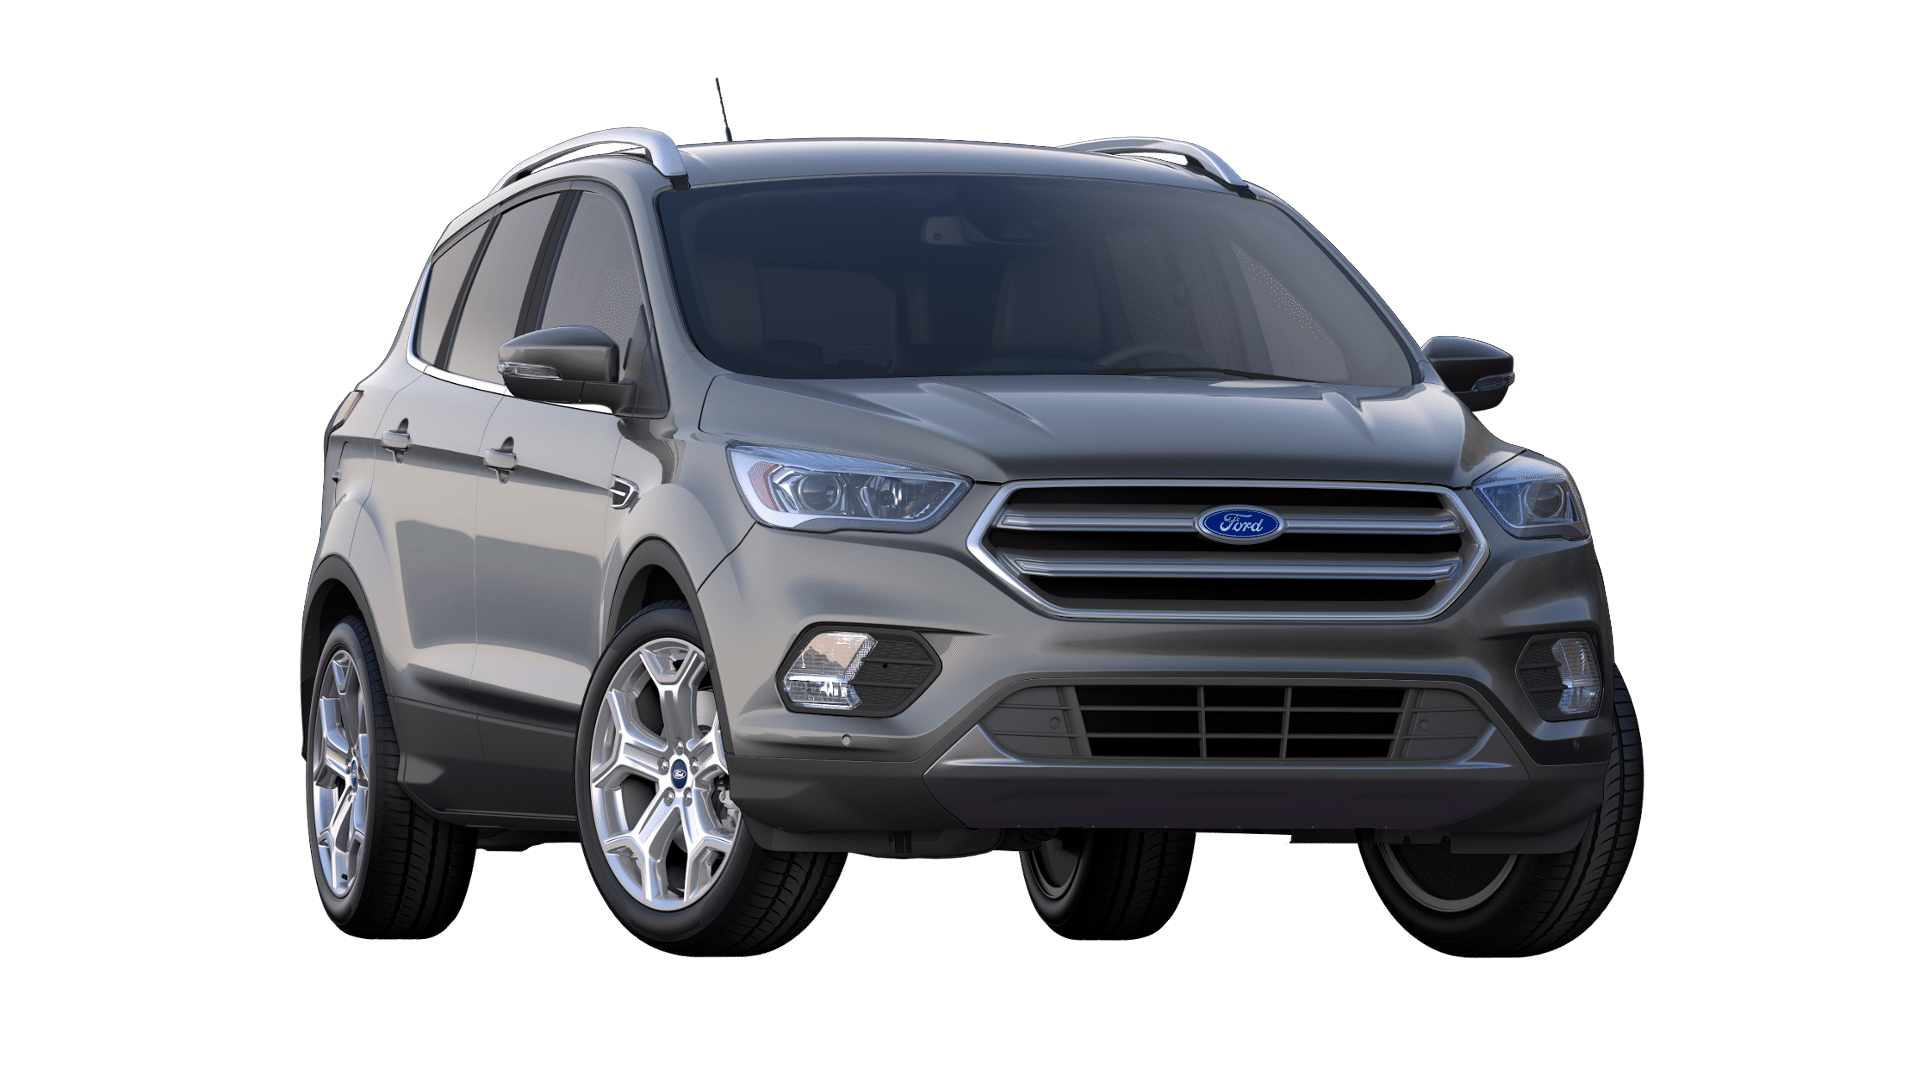 2019 Ford Escape Magnetic Exterior Color